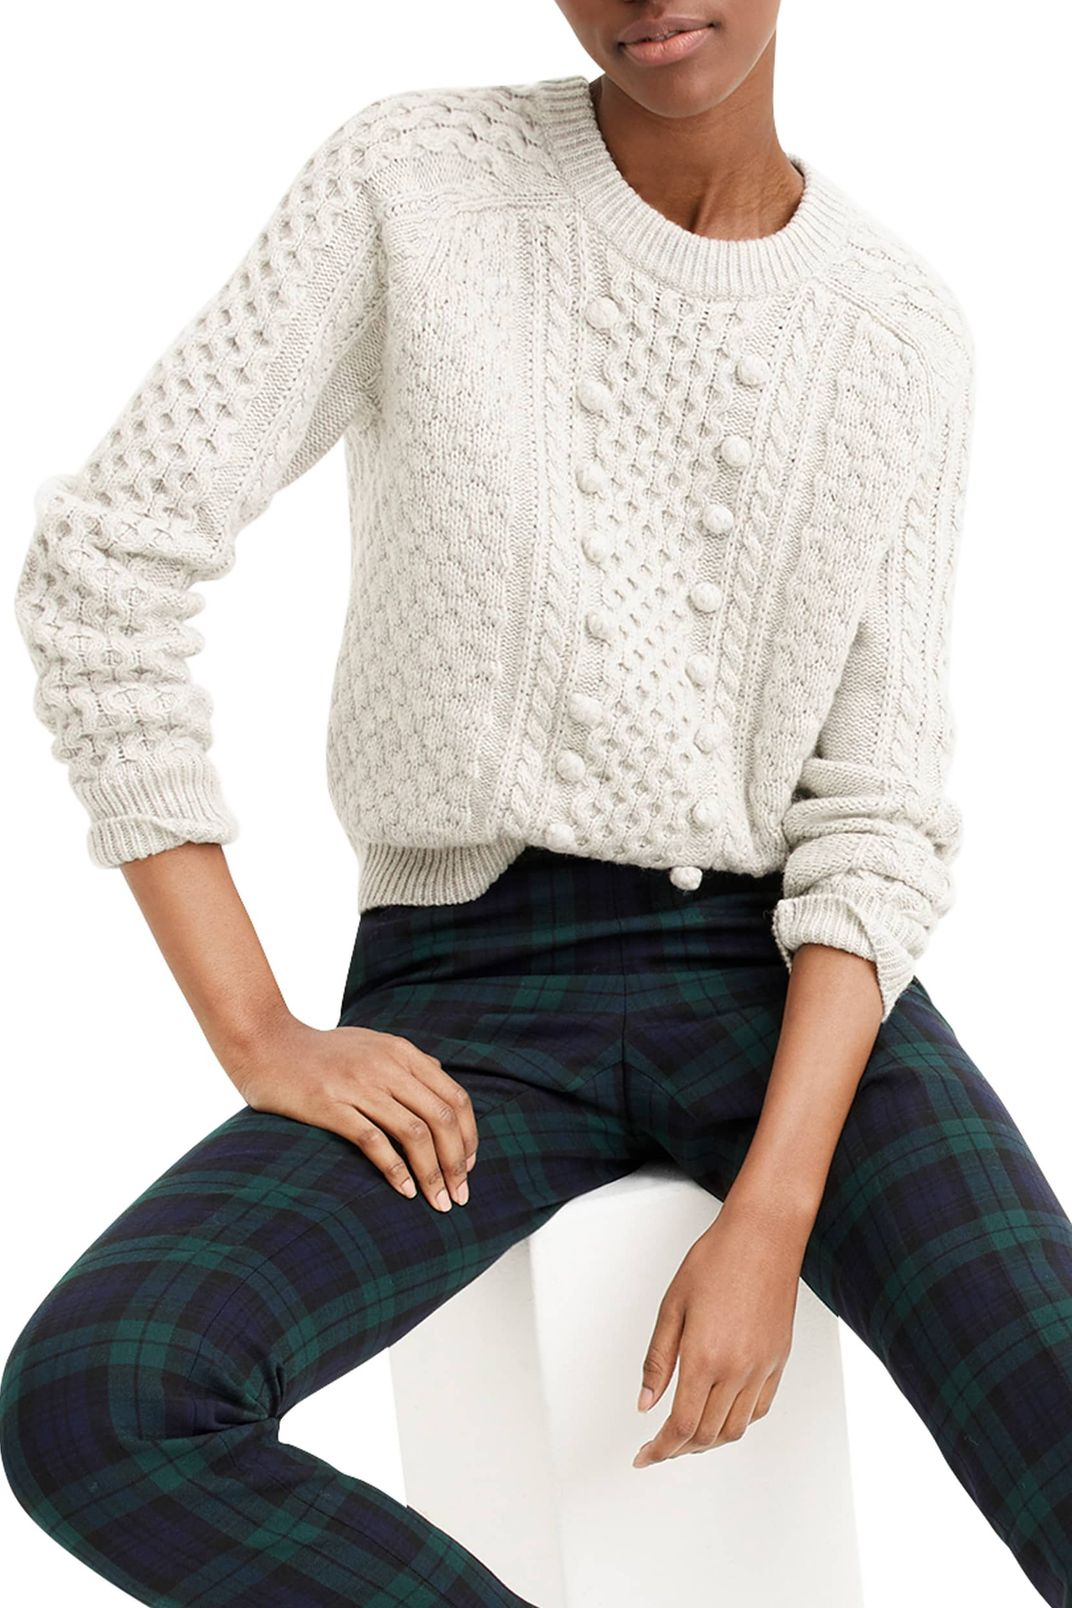 J.Crew Popcorn Cable Knit Sweater